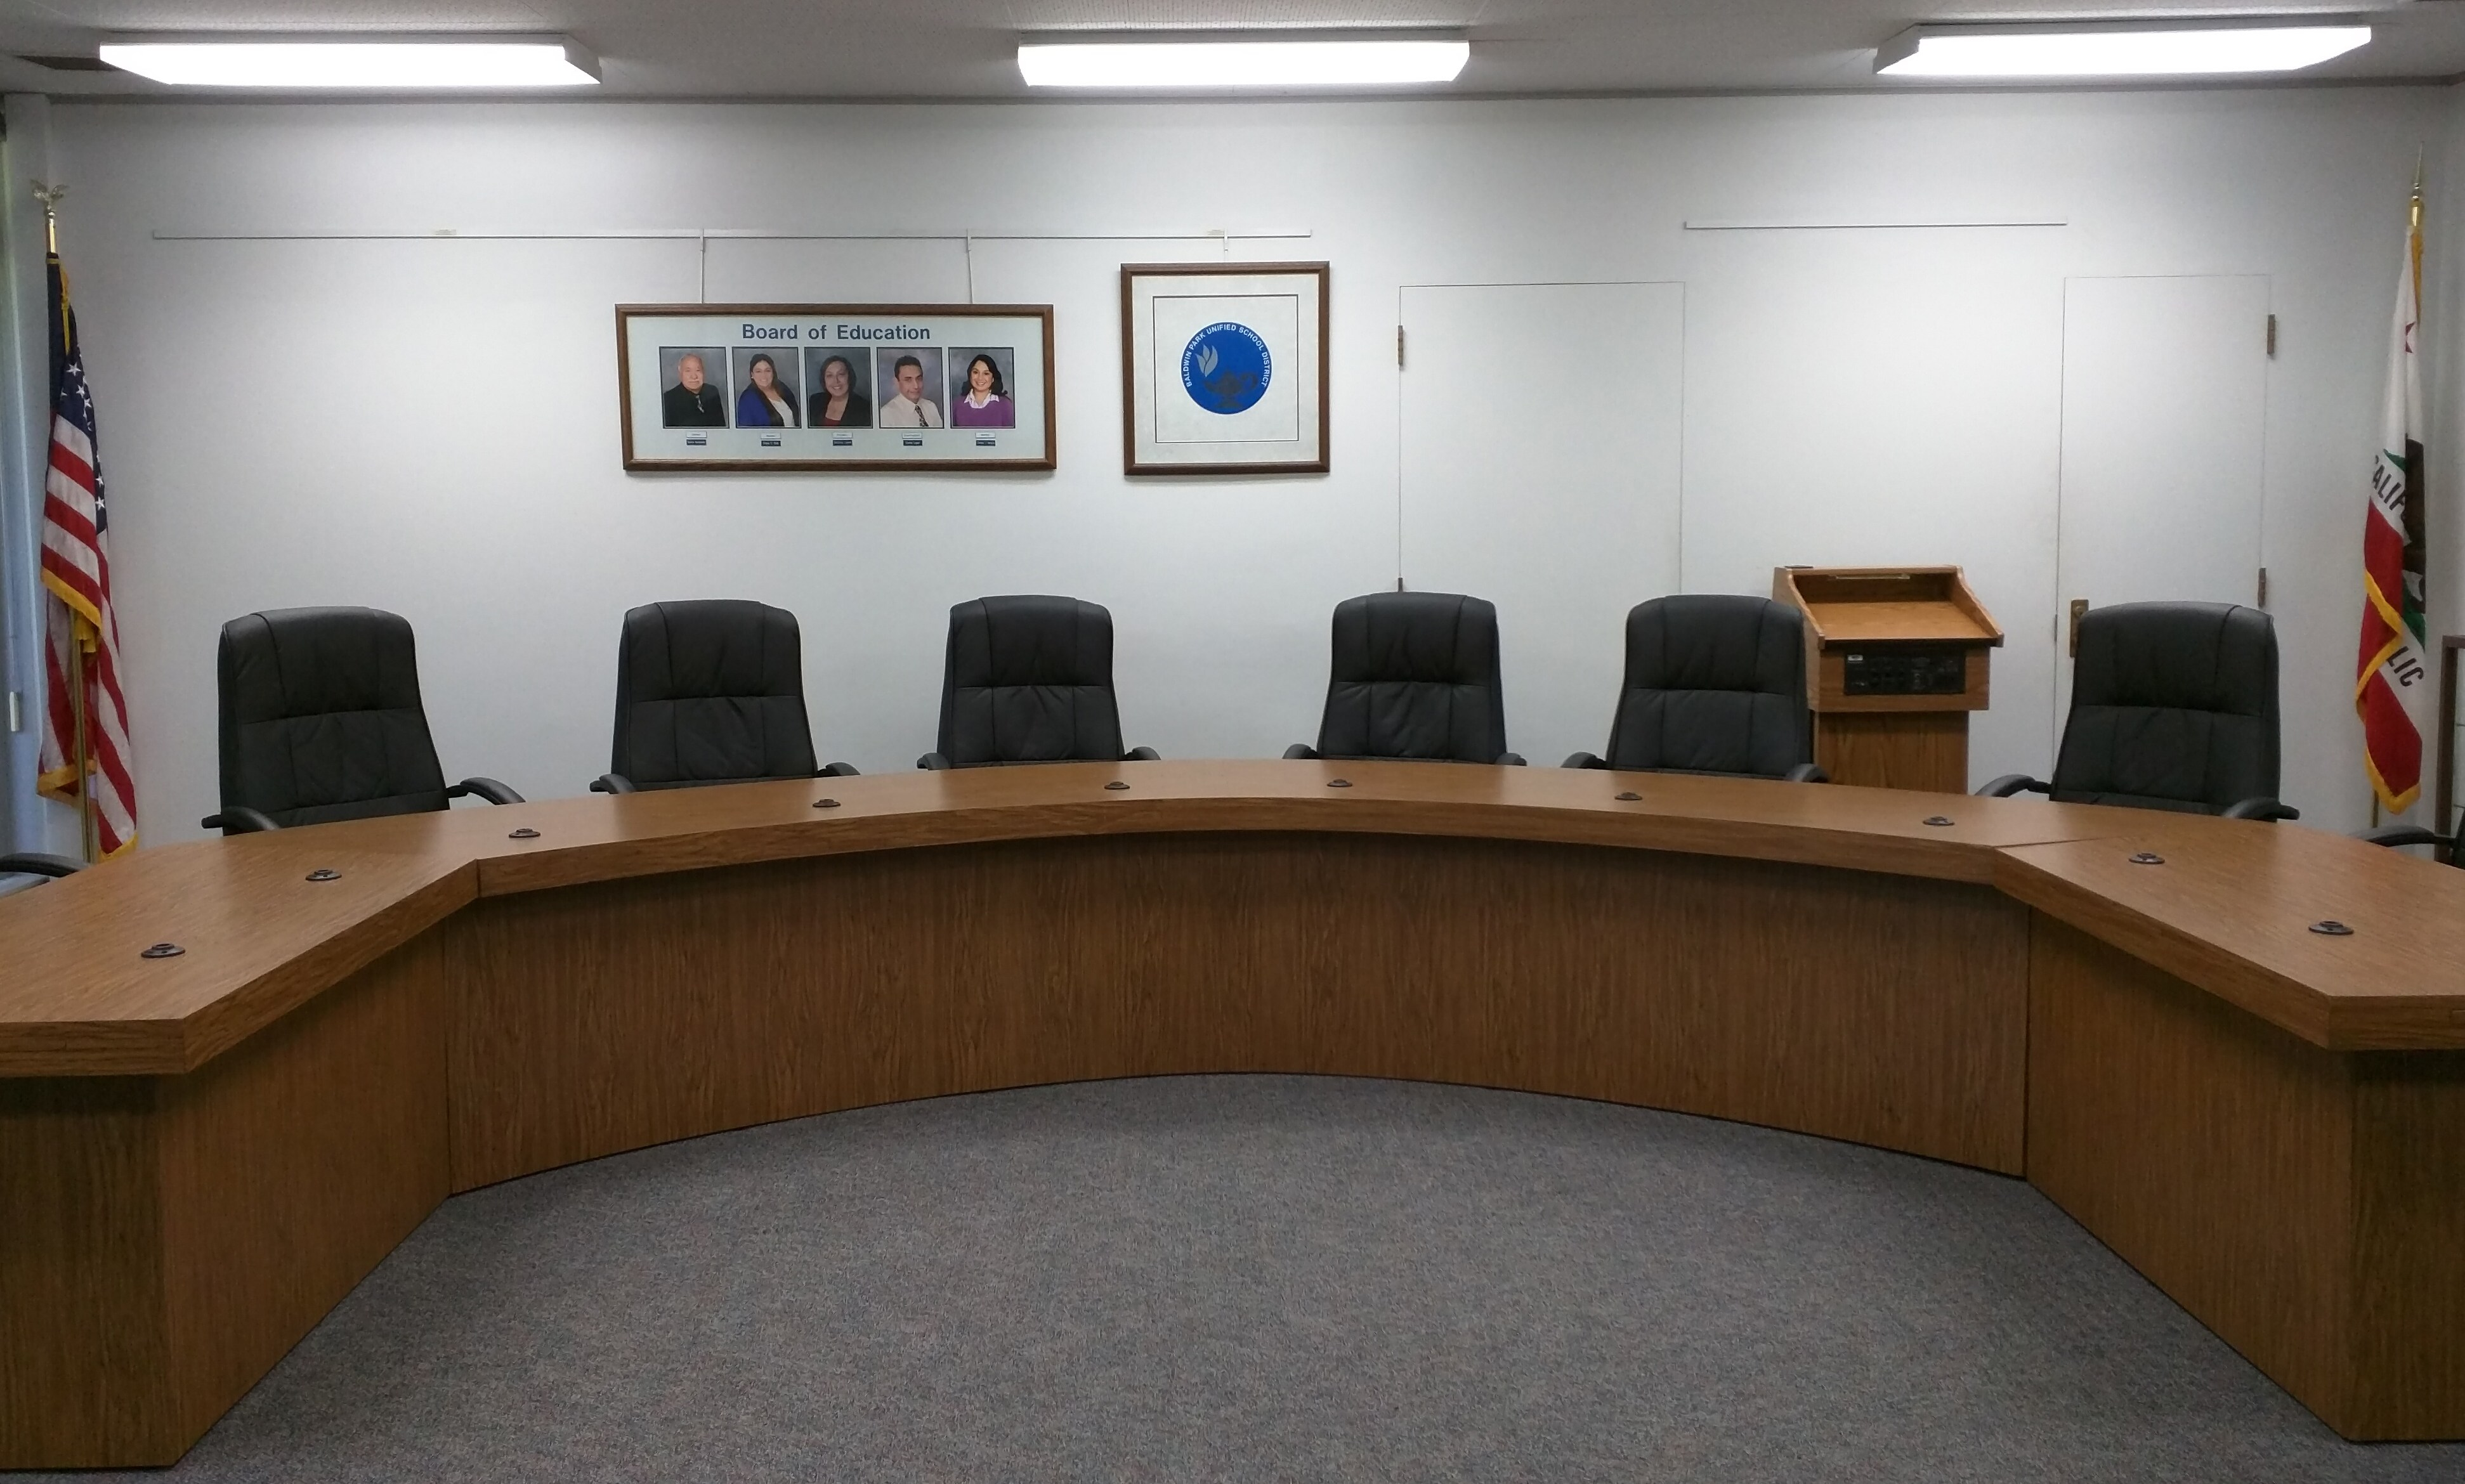 BPUSD Board Room